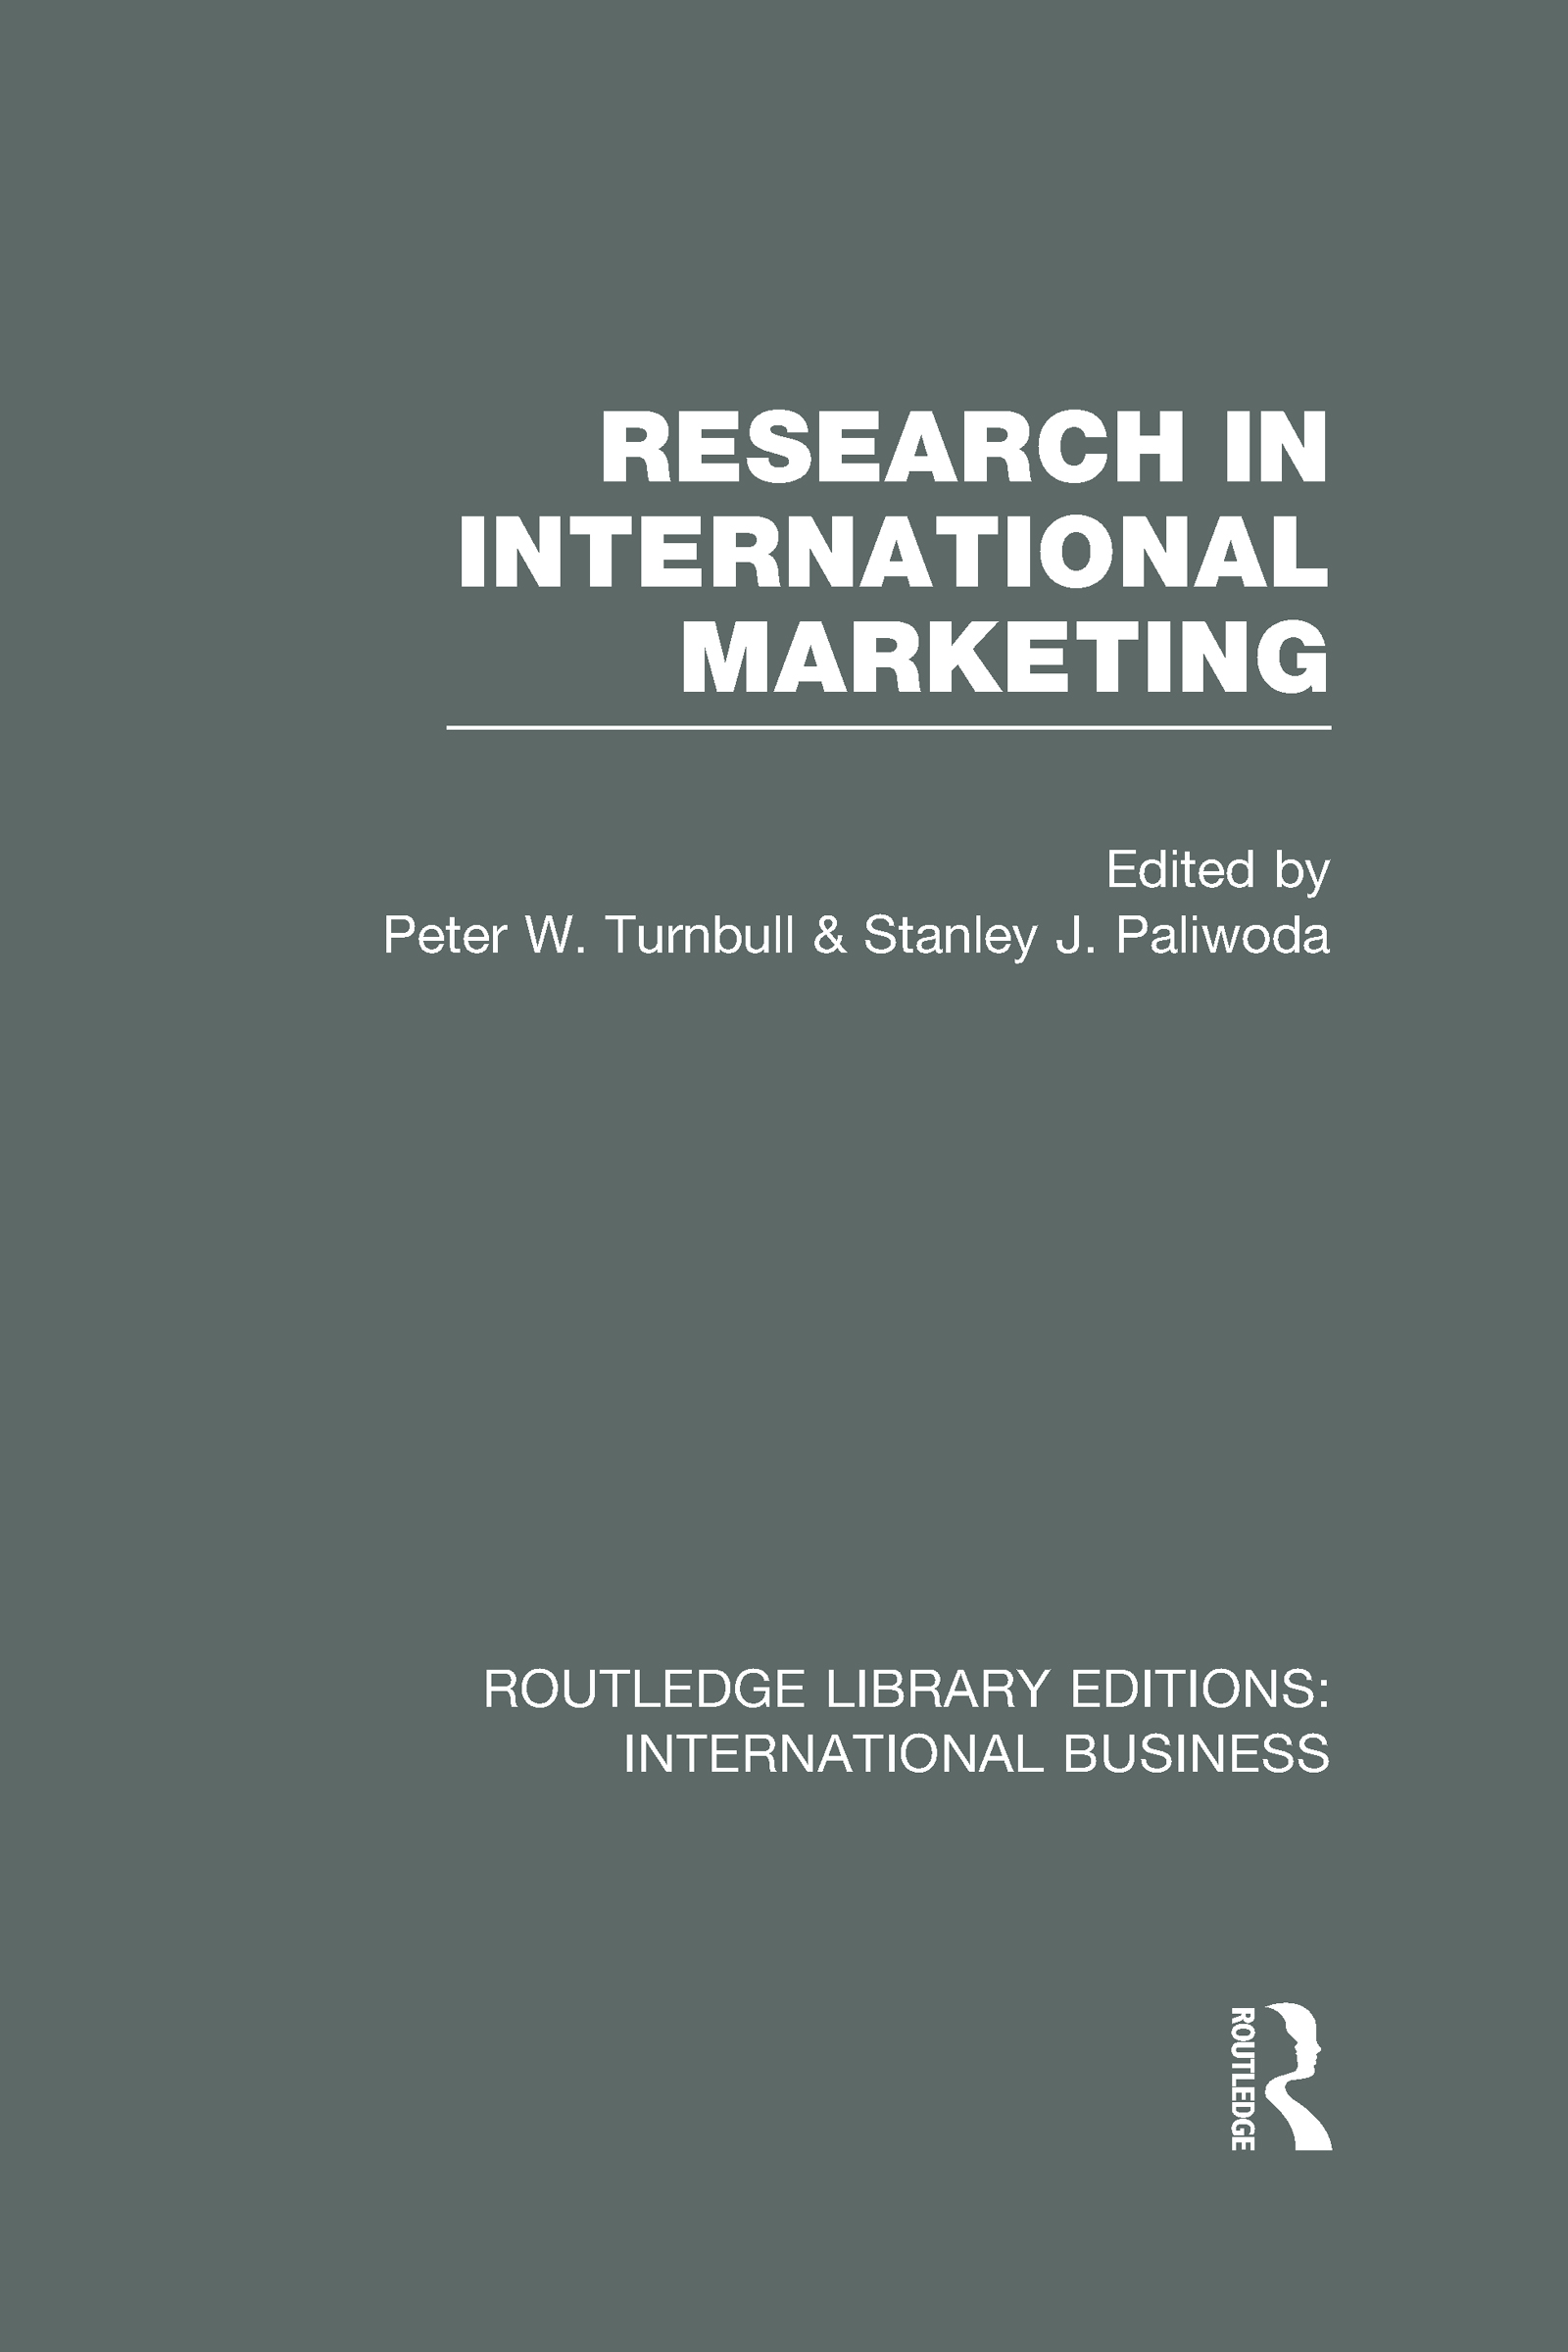 Research in International Marketing (RLE International Business) (Hardback) book cover